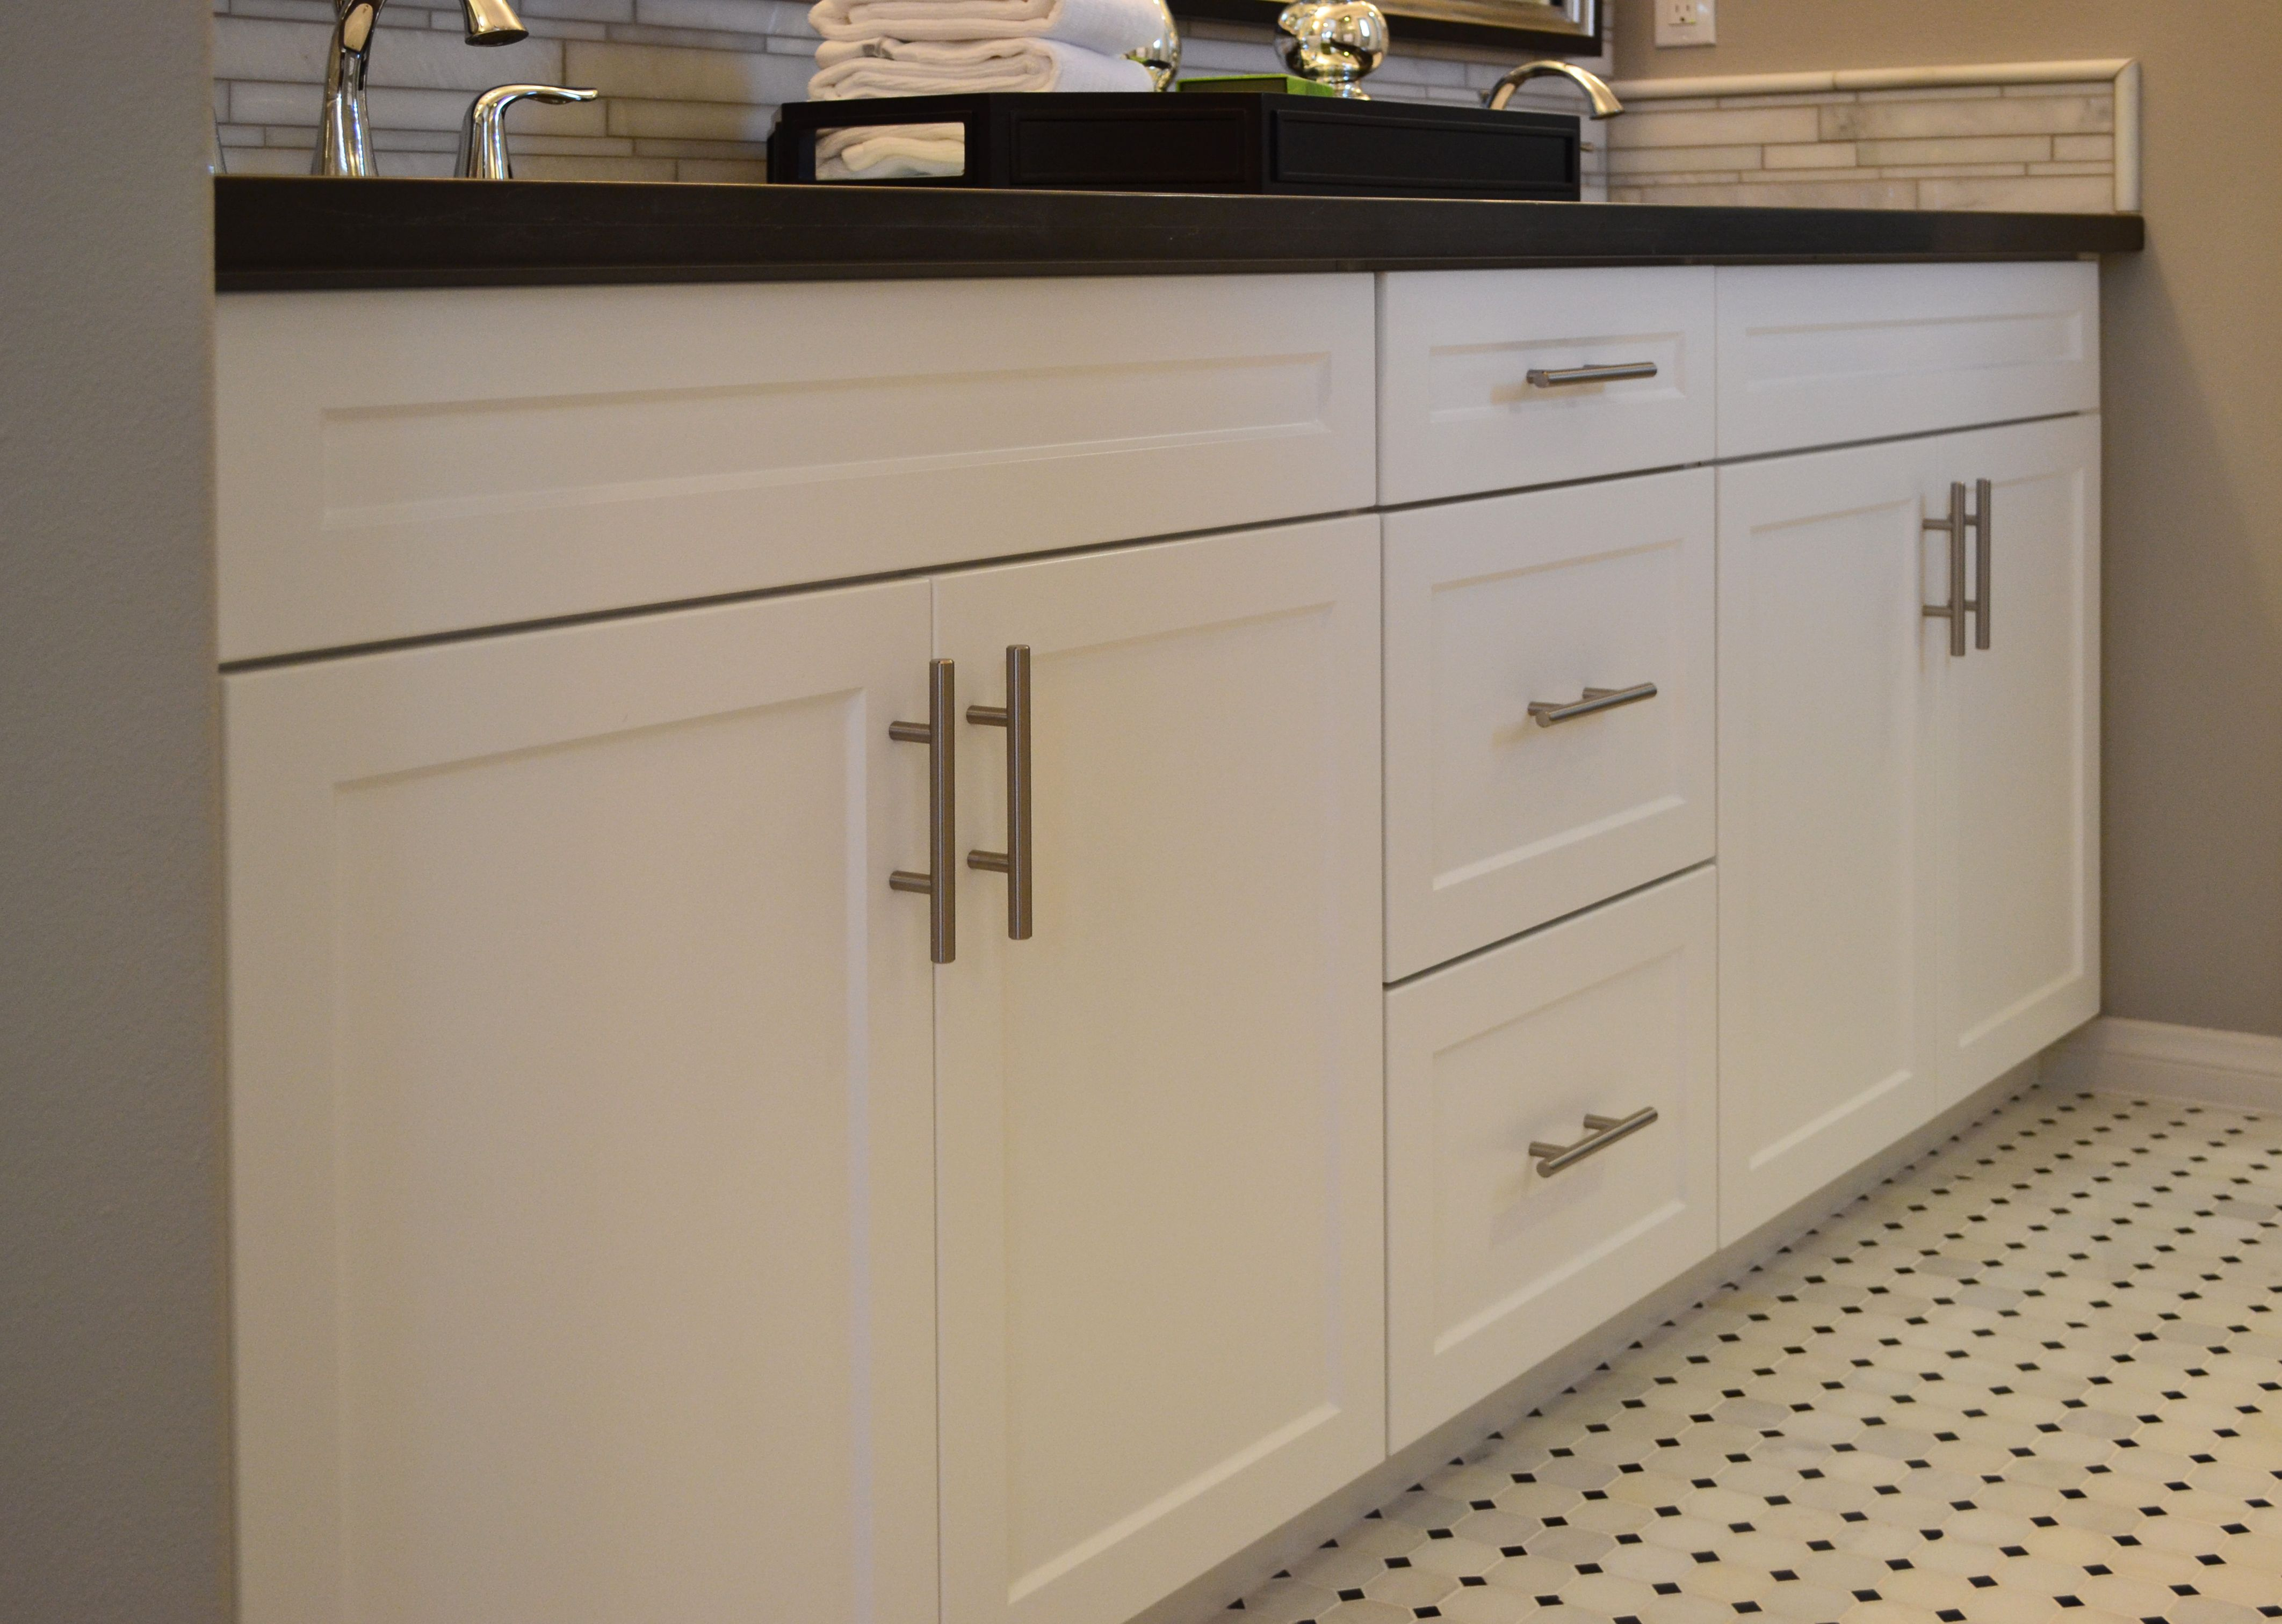 Mission Thermofoil Satin White Frameless Cabinetry With Brushed Nickel Gallery